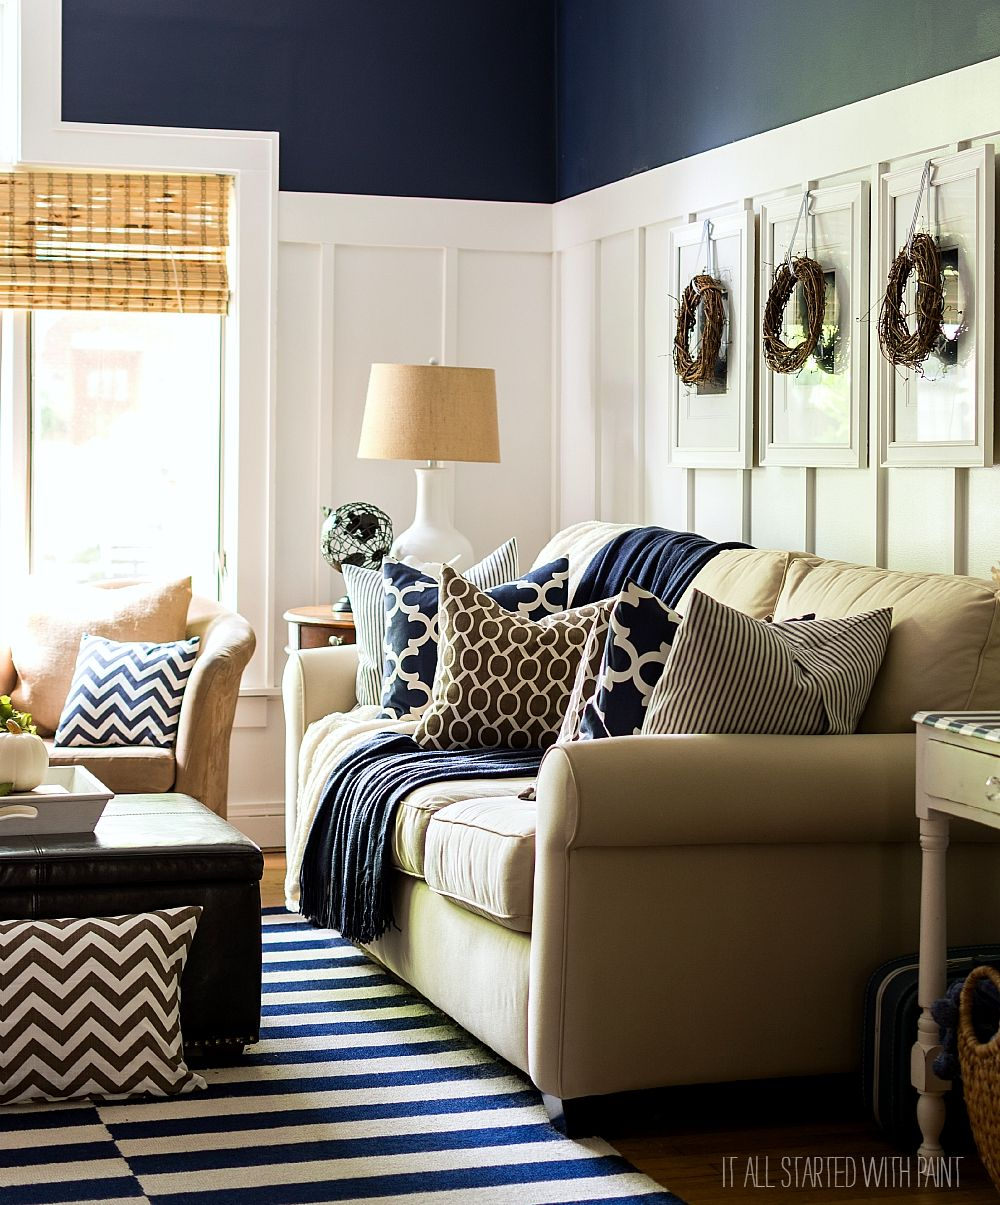 Fall Decor In Navy And Blue PaintsBeige Living RoomsBlue Brown RoomWainscoting IdeasCottage